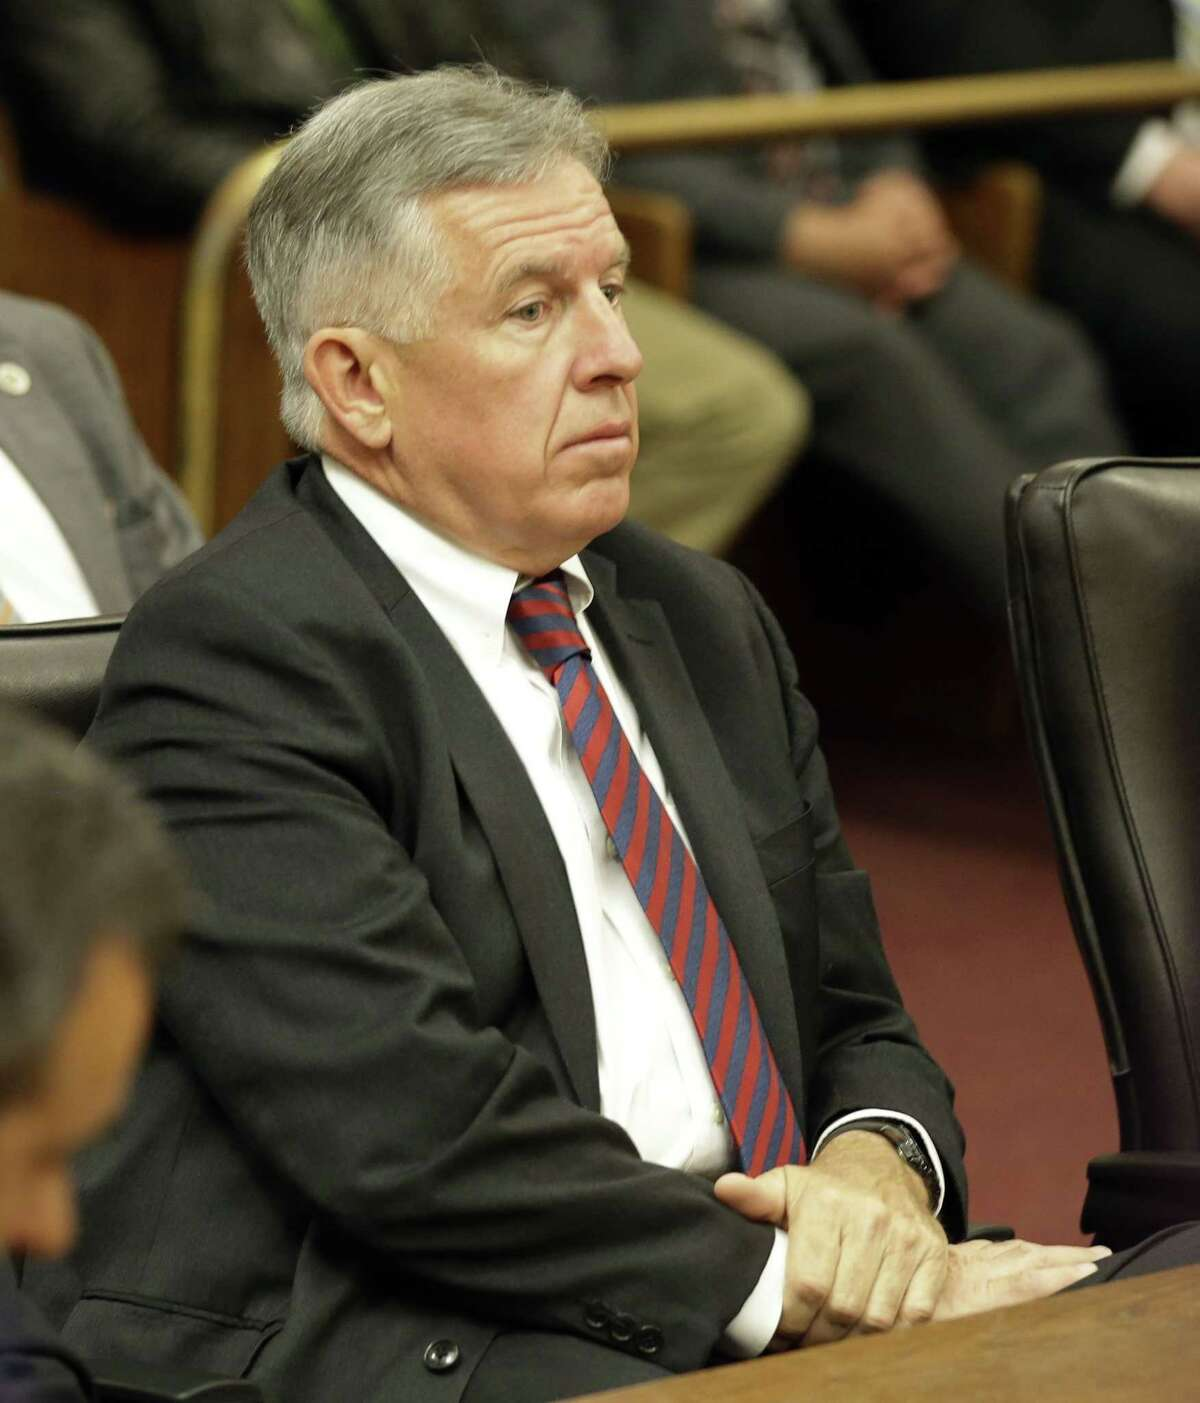 Cuyahoga County Prosecutor Timothy J. McGinty listens as the judge reads the verdict in the Michael Brelo case Saturday, May 23, 2015, in Cleveland. Brelo, a patrolman charged in the shooting deaths of two unarmed suspects during a 137-shot barrage of gunfire was acquitted Saturday in a case that helped prompt the U.S. Department of Justice determine the city police department had a history of using excessive force and violating civil rights. (AP Photo/Tony Dejak)